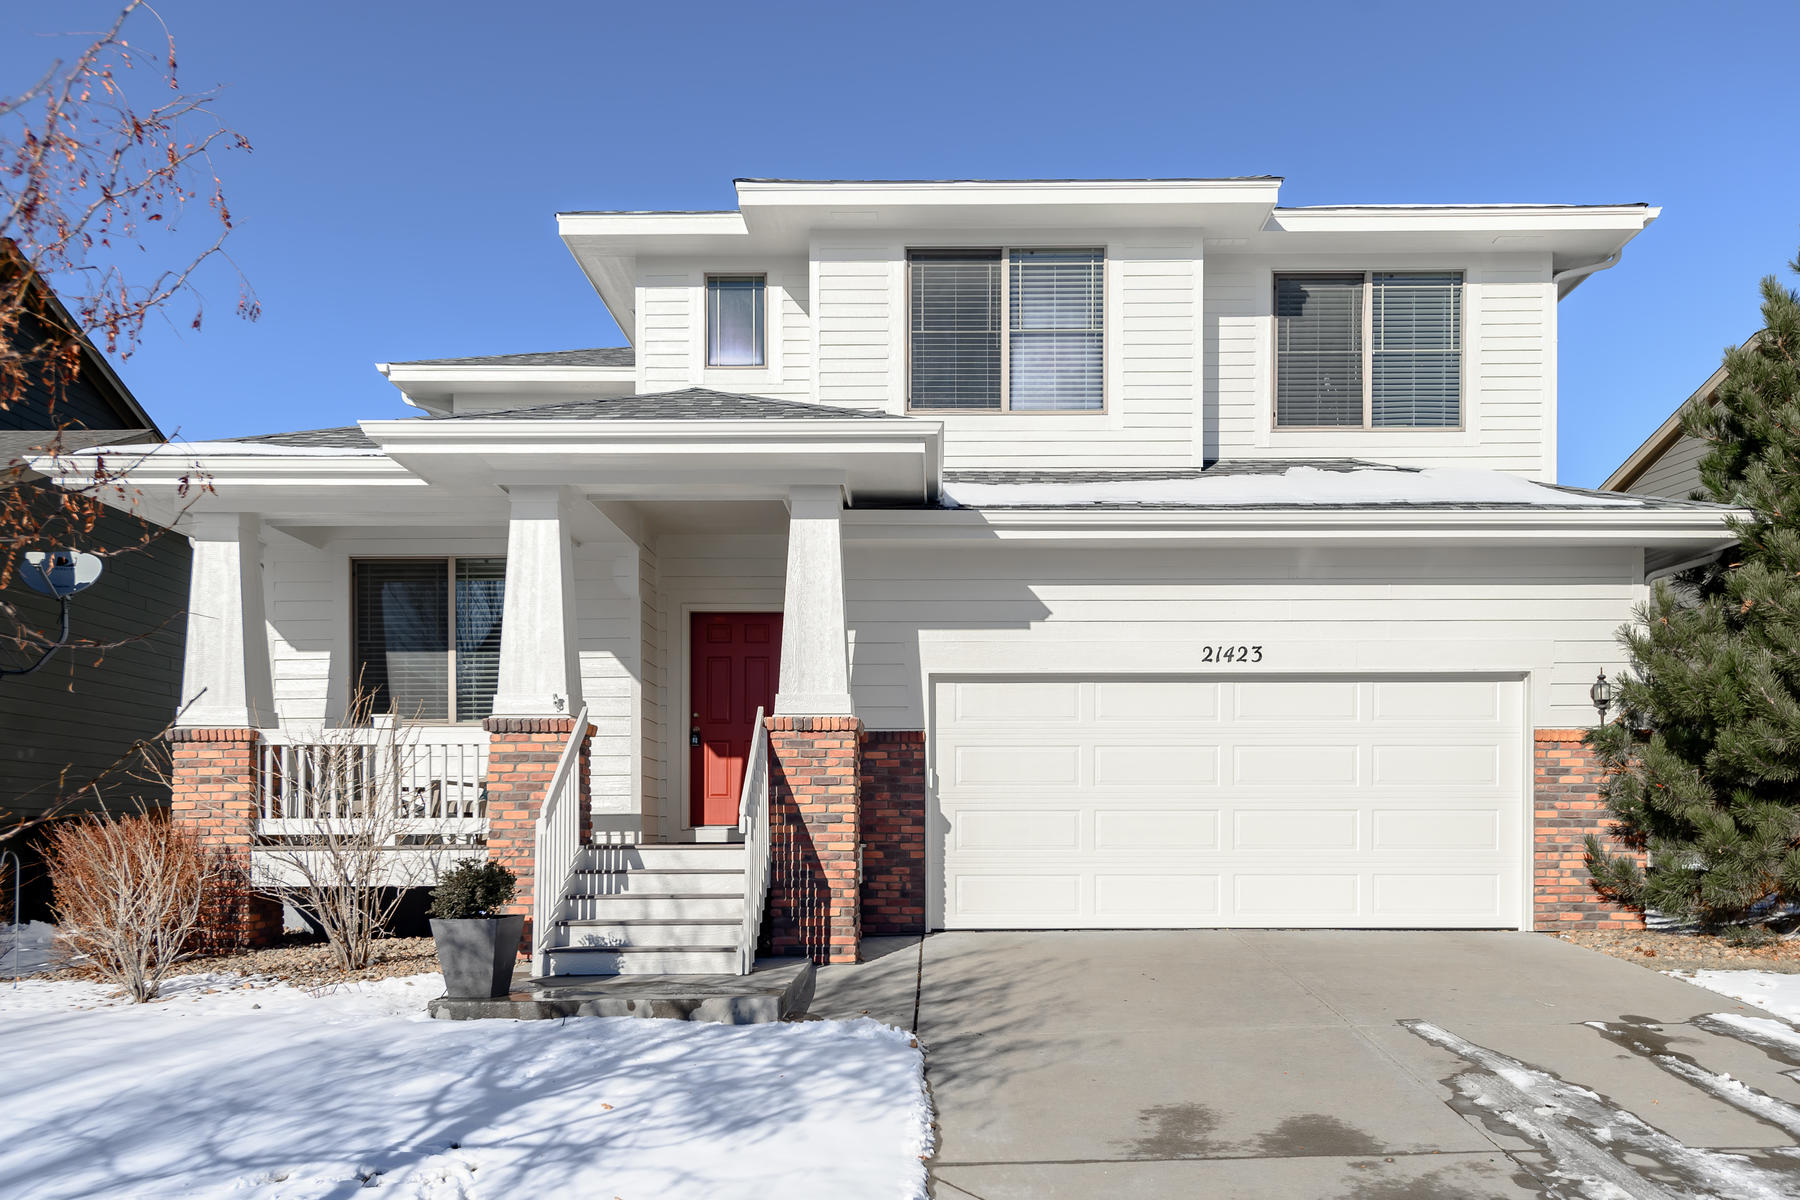 Single Family Homes for Sale at Bright, Open, & Beautiful 4 Bedroom Home on Quiet Street 21423 E Stroll Avenue Parker, Colorado 80138 United States